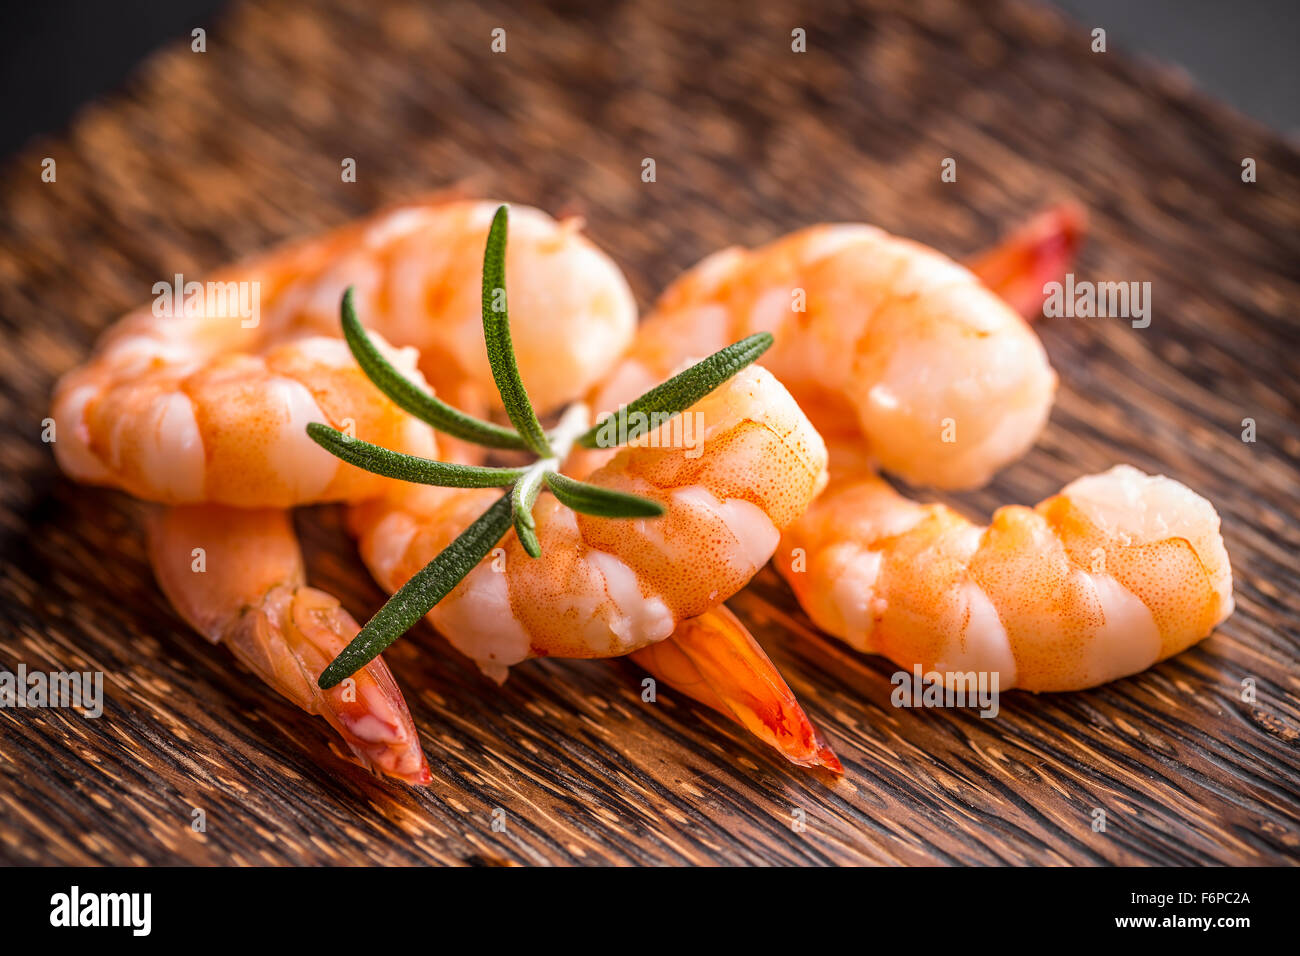 Close up of prawns with rosemary - Stock Image